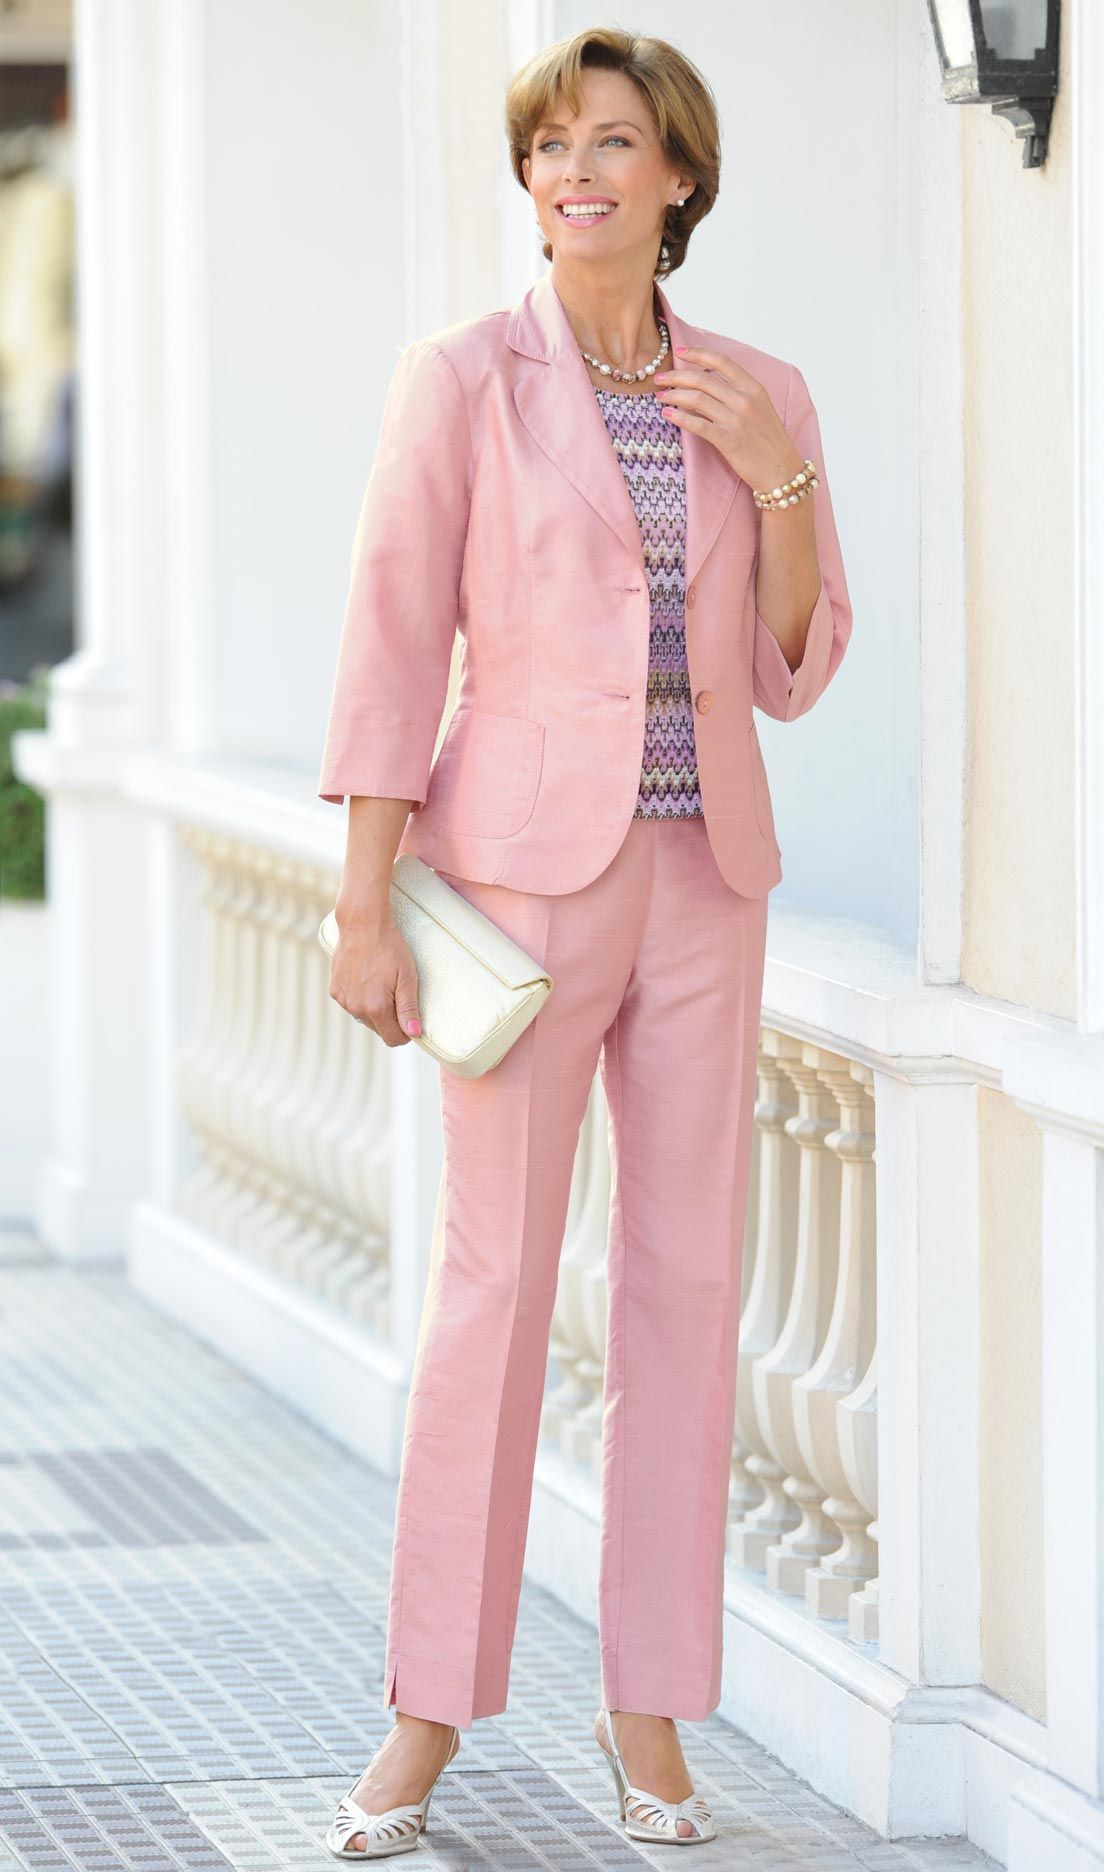 womens pink suit | women suits | Pinterest | Pink, Suits and Pants